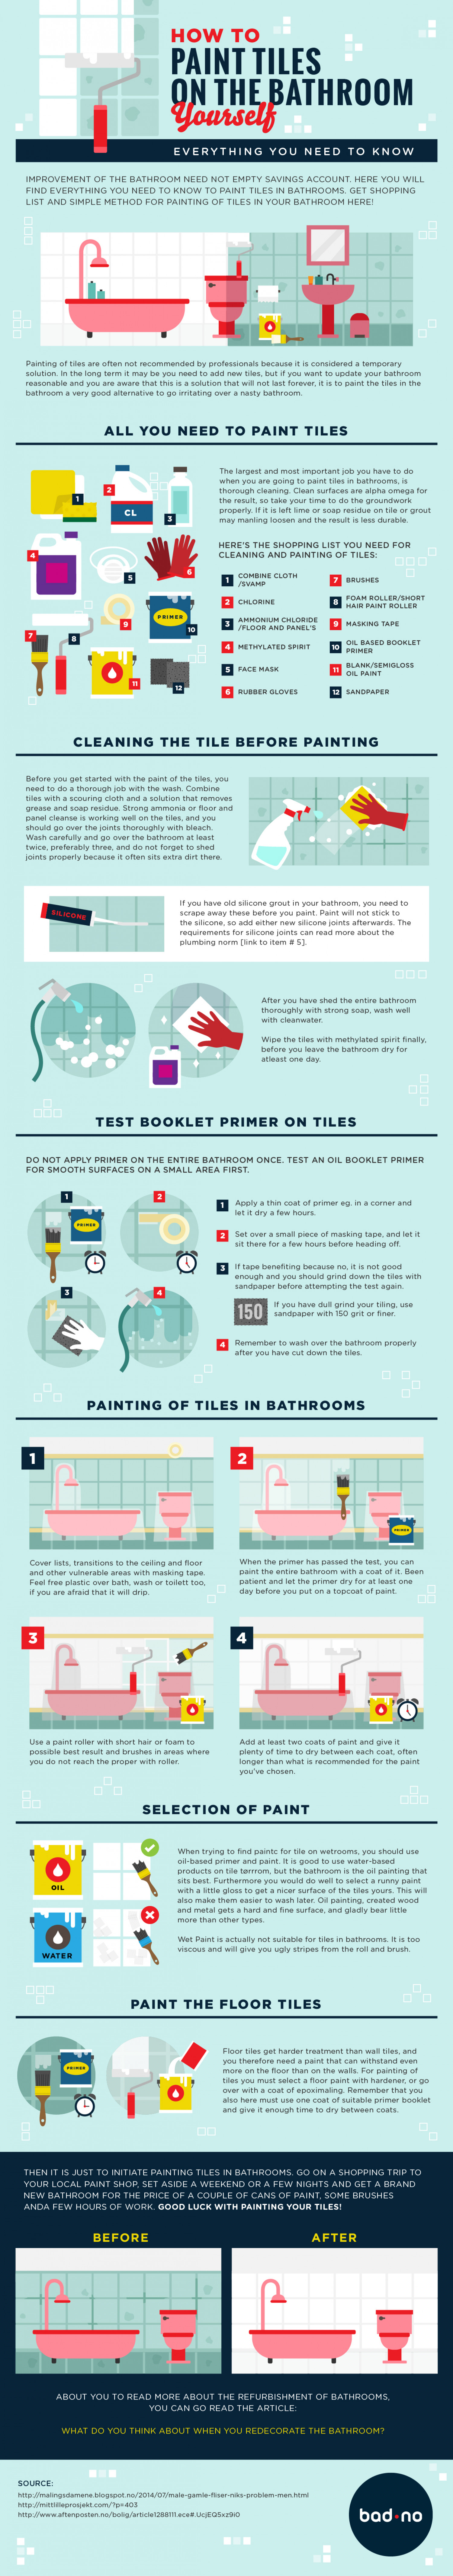 How to Paint Tiles on The Bathroom Yourself Infographic